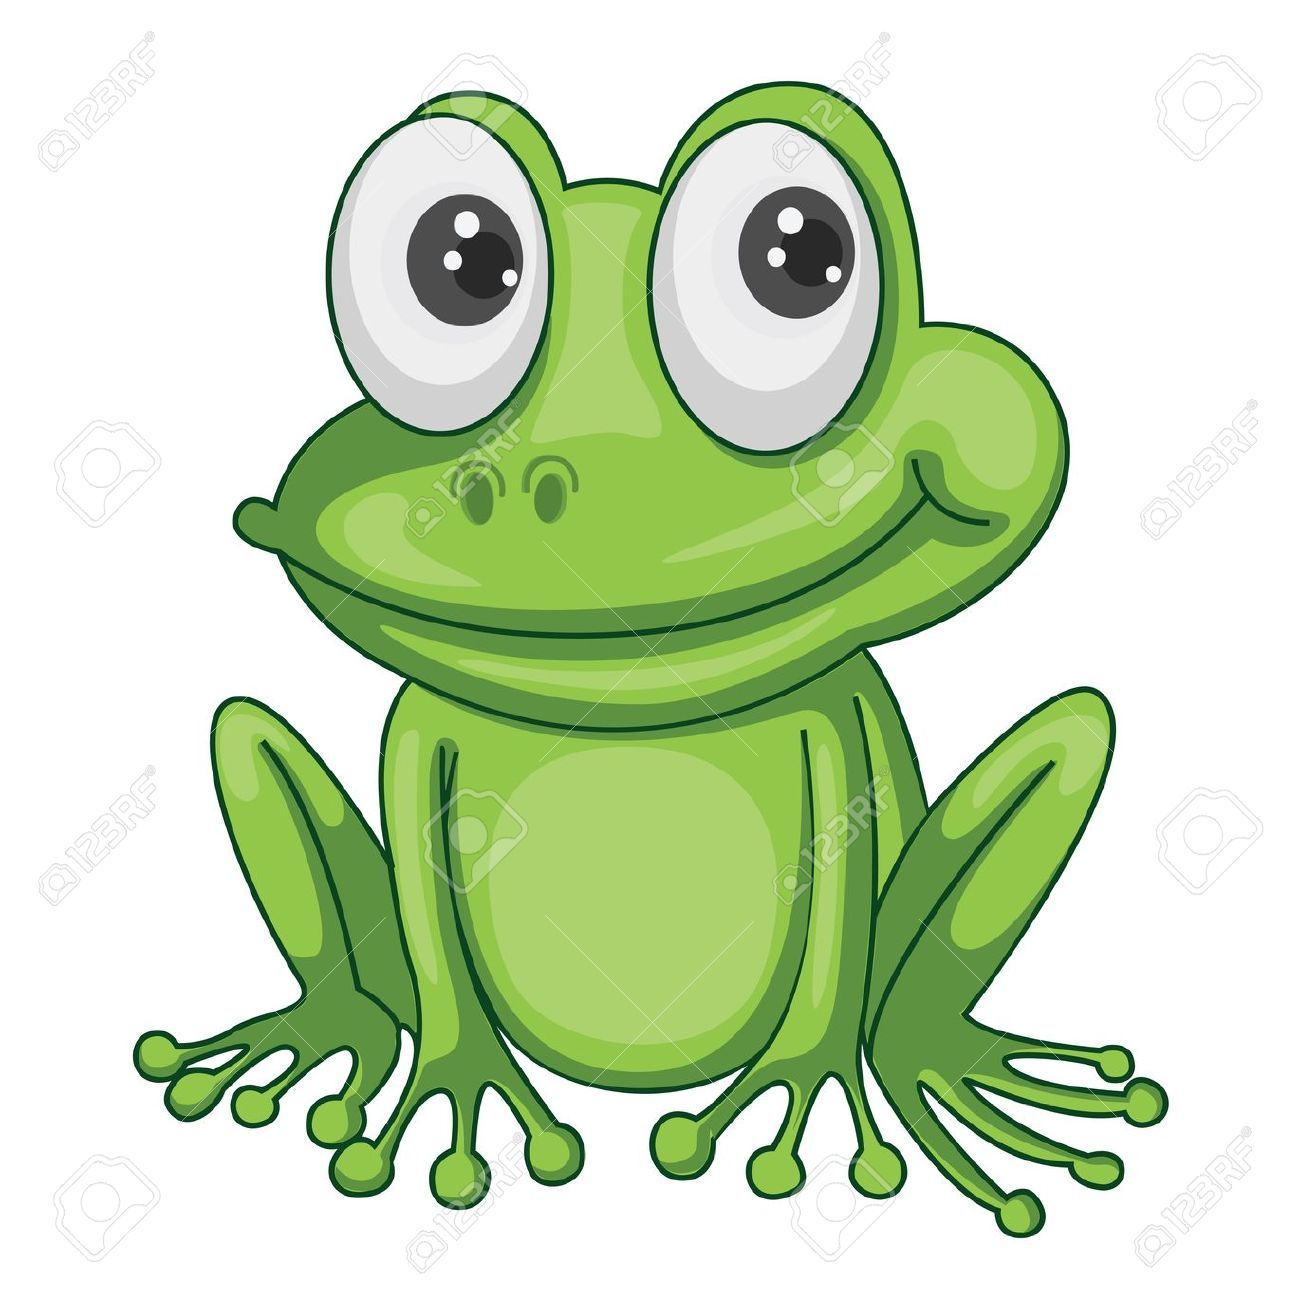 Cartoon frog - photo#29